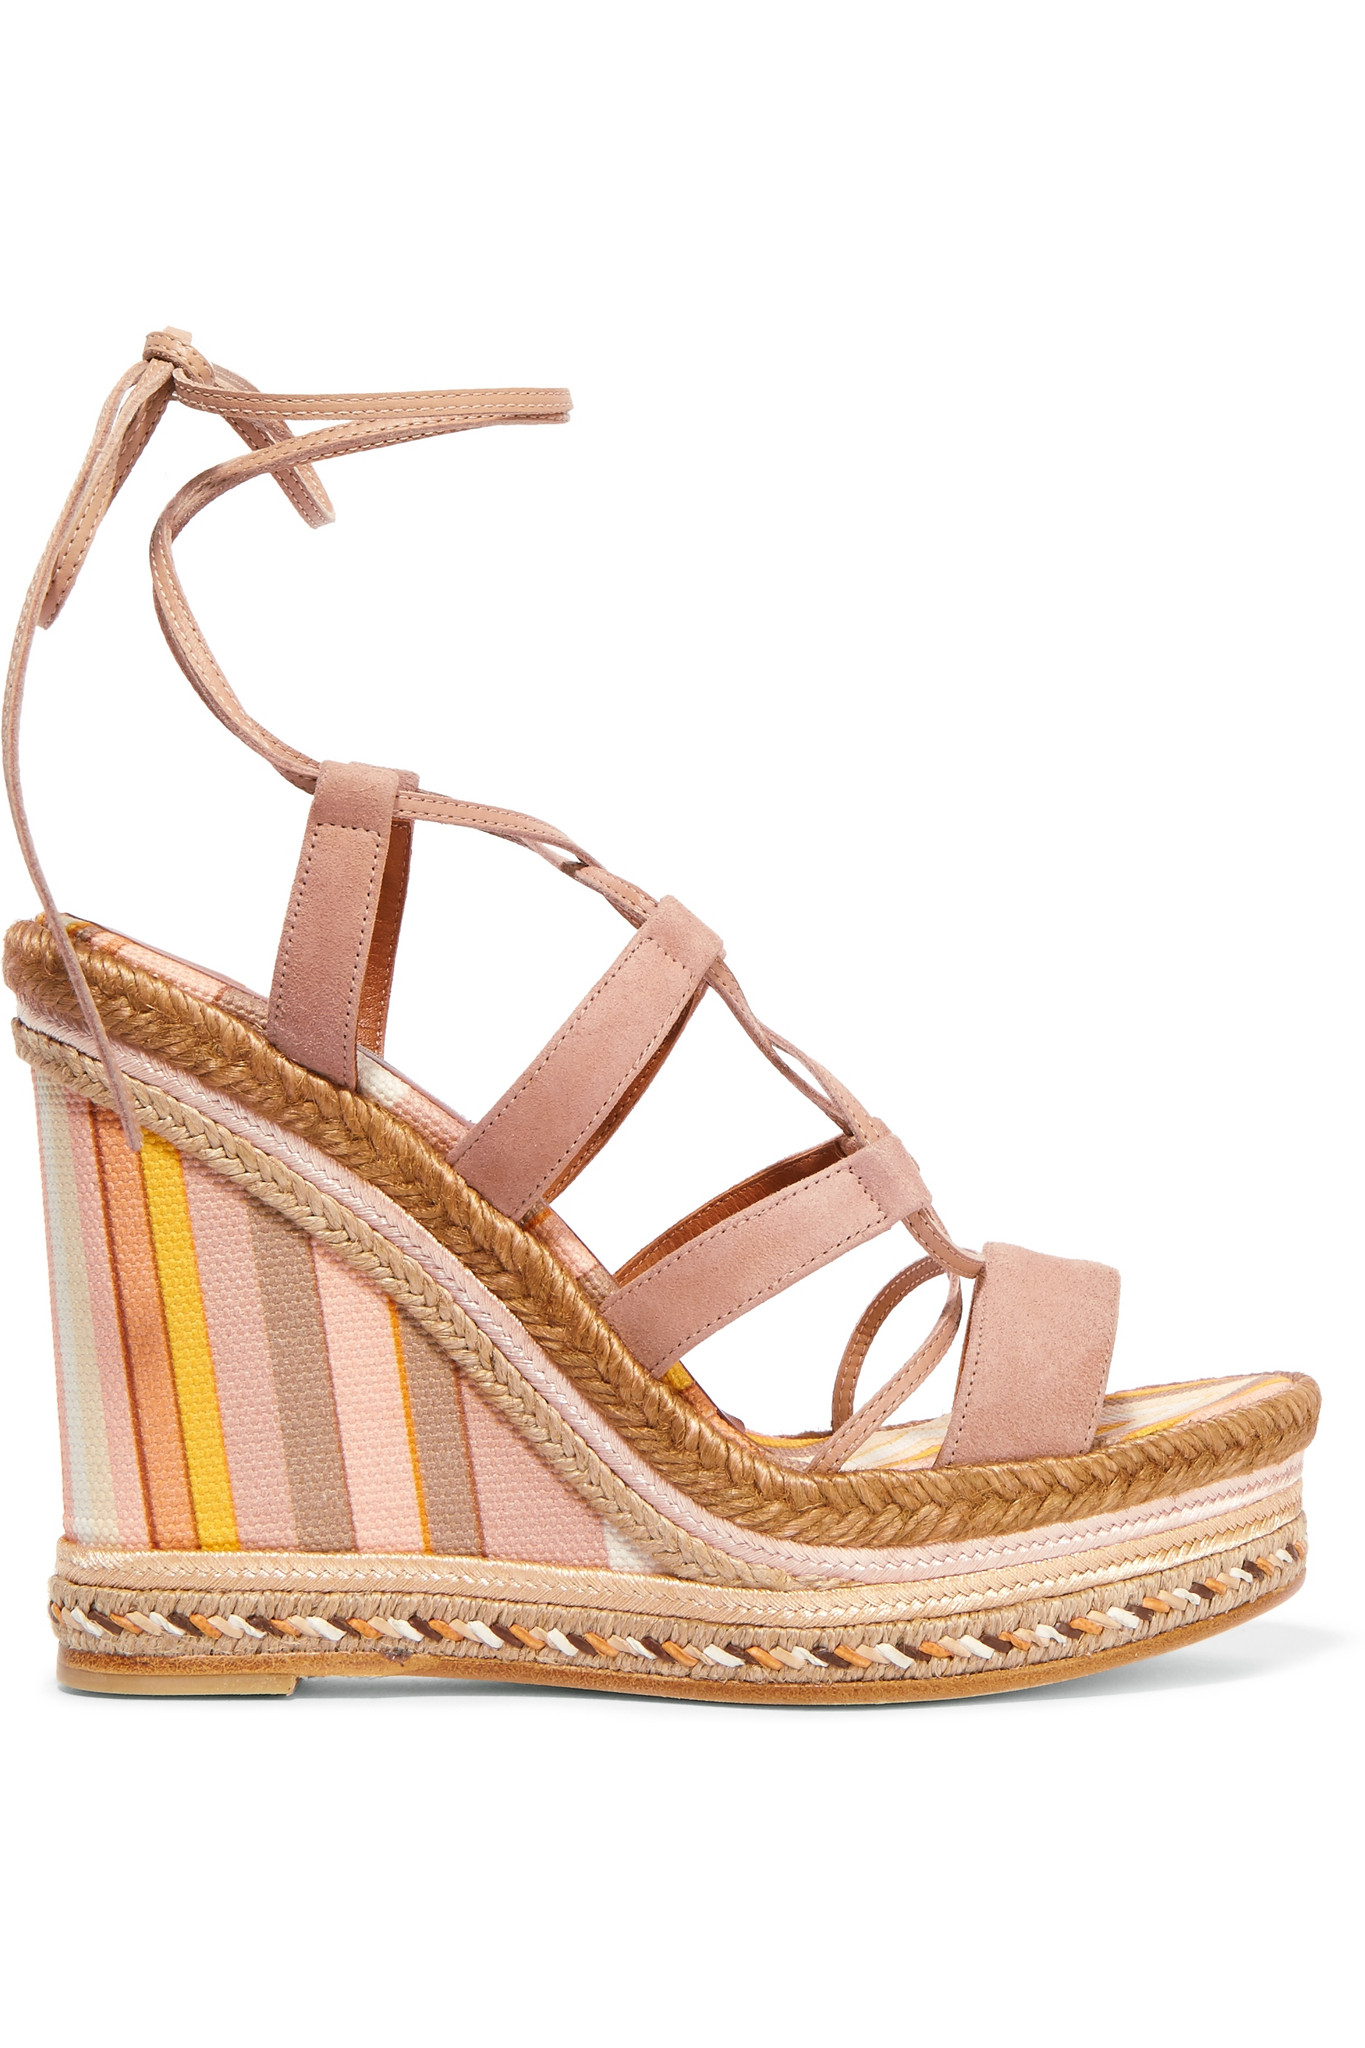 Valentino Canvas Wedge Sandals cheap sale 100% authentic discount deals high quality a7a5n